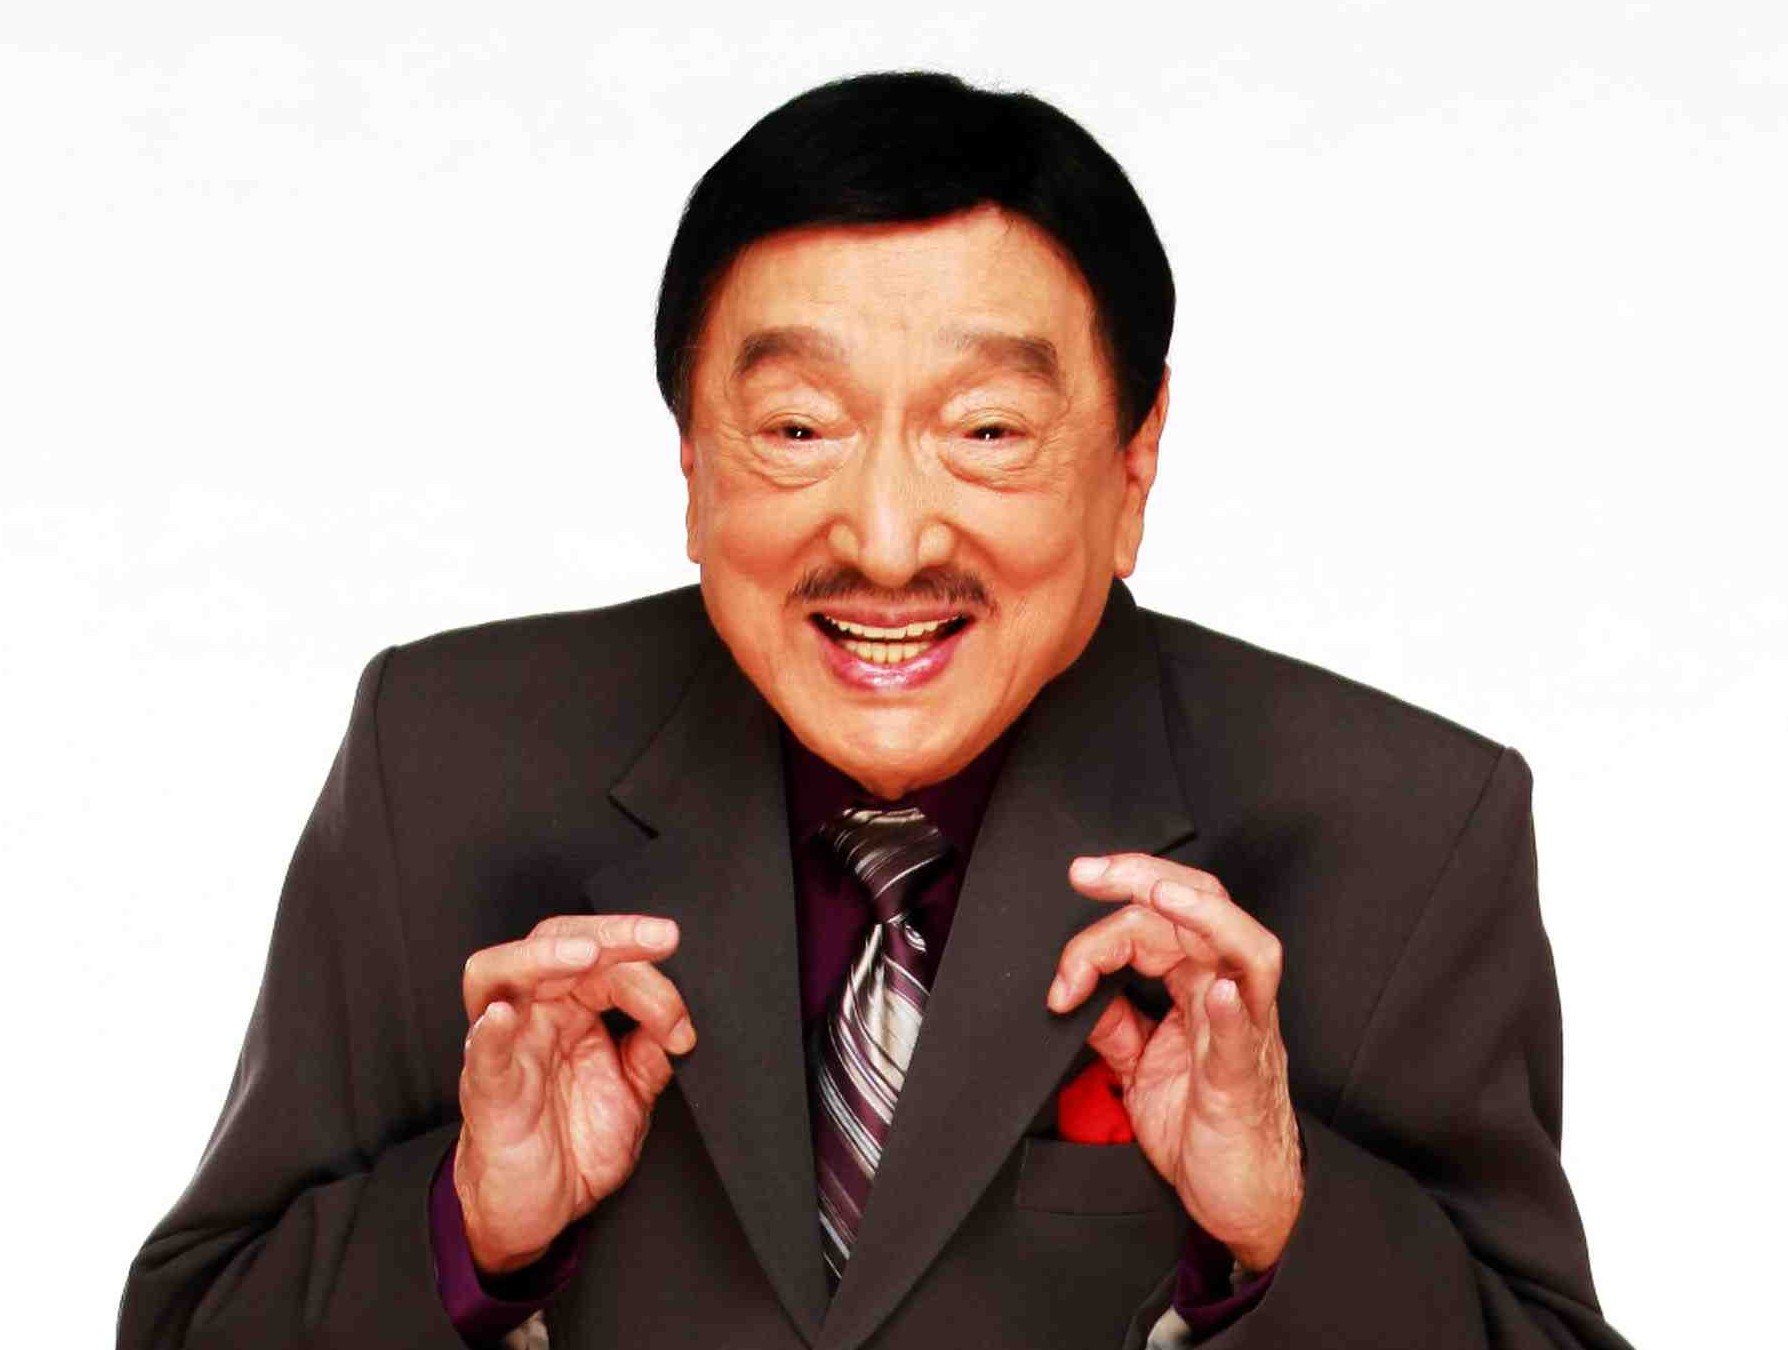 comedian-actor Dolphy - age: 83